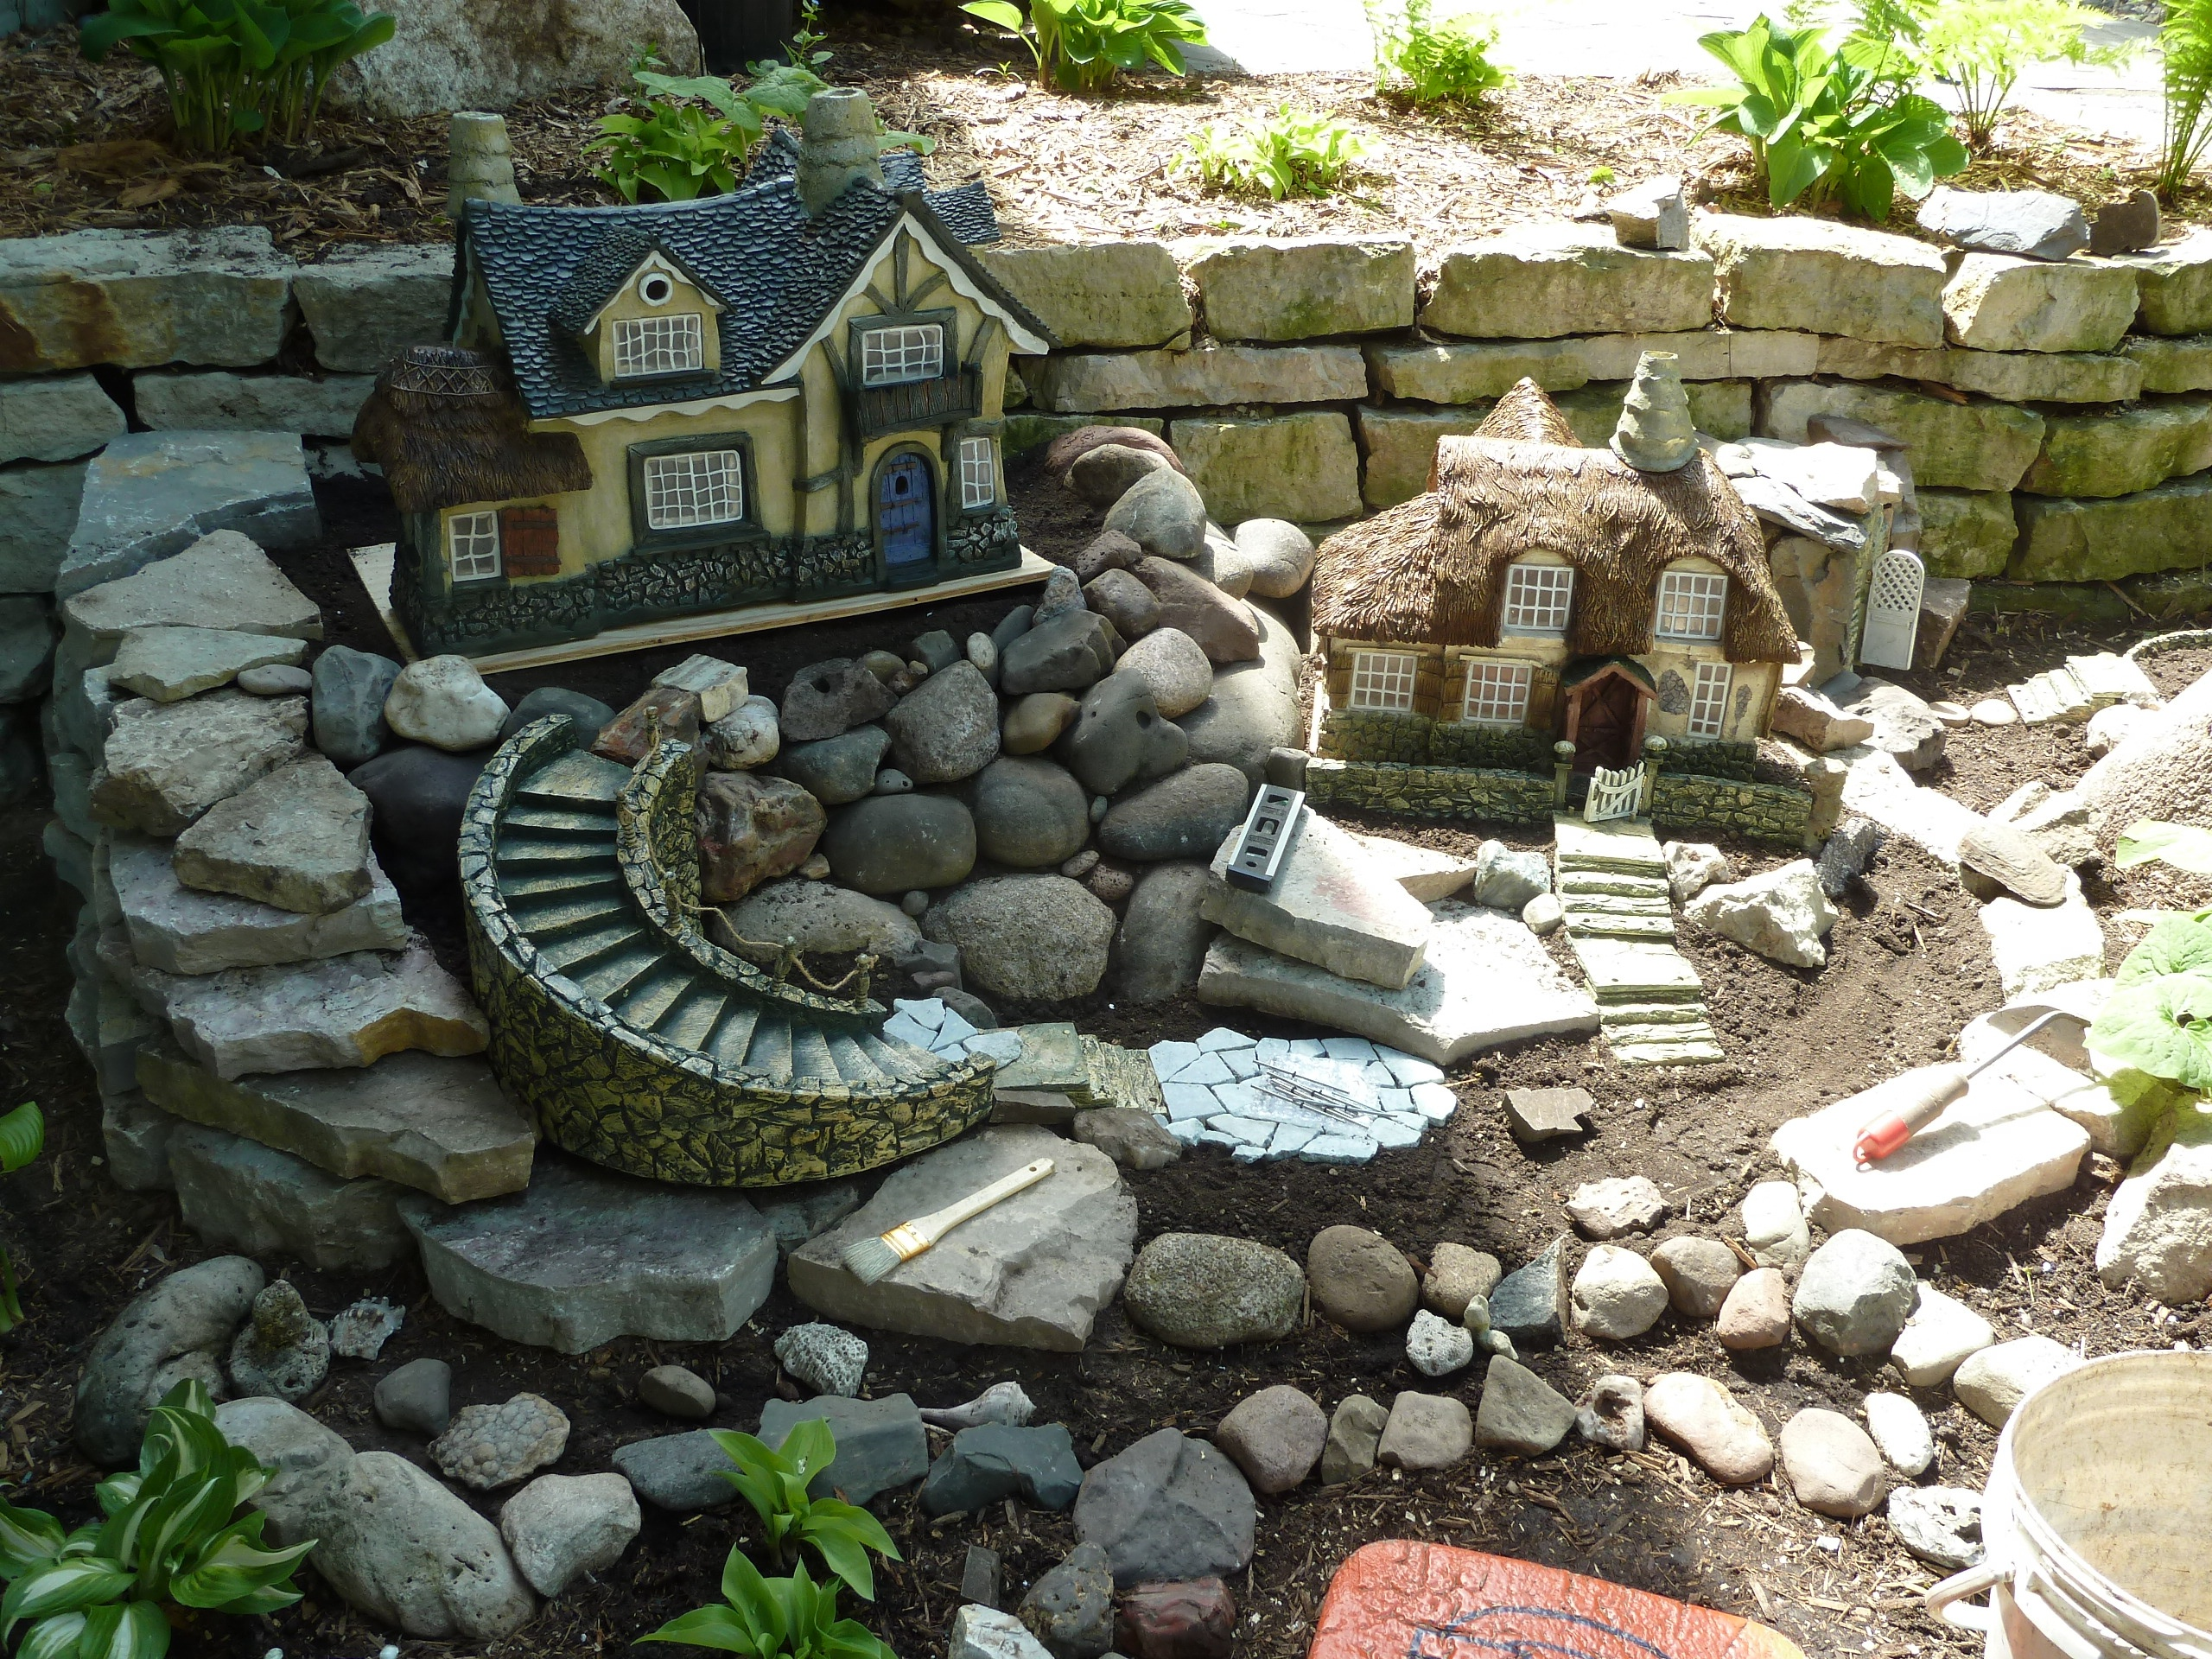 fairy garden pictures, garden with lots of gray stones of different sizes, decorated with two miniature houses, several green plants and tools